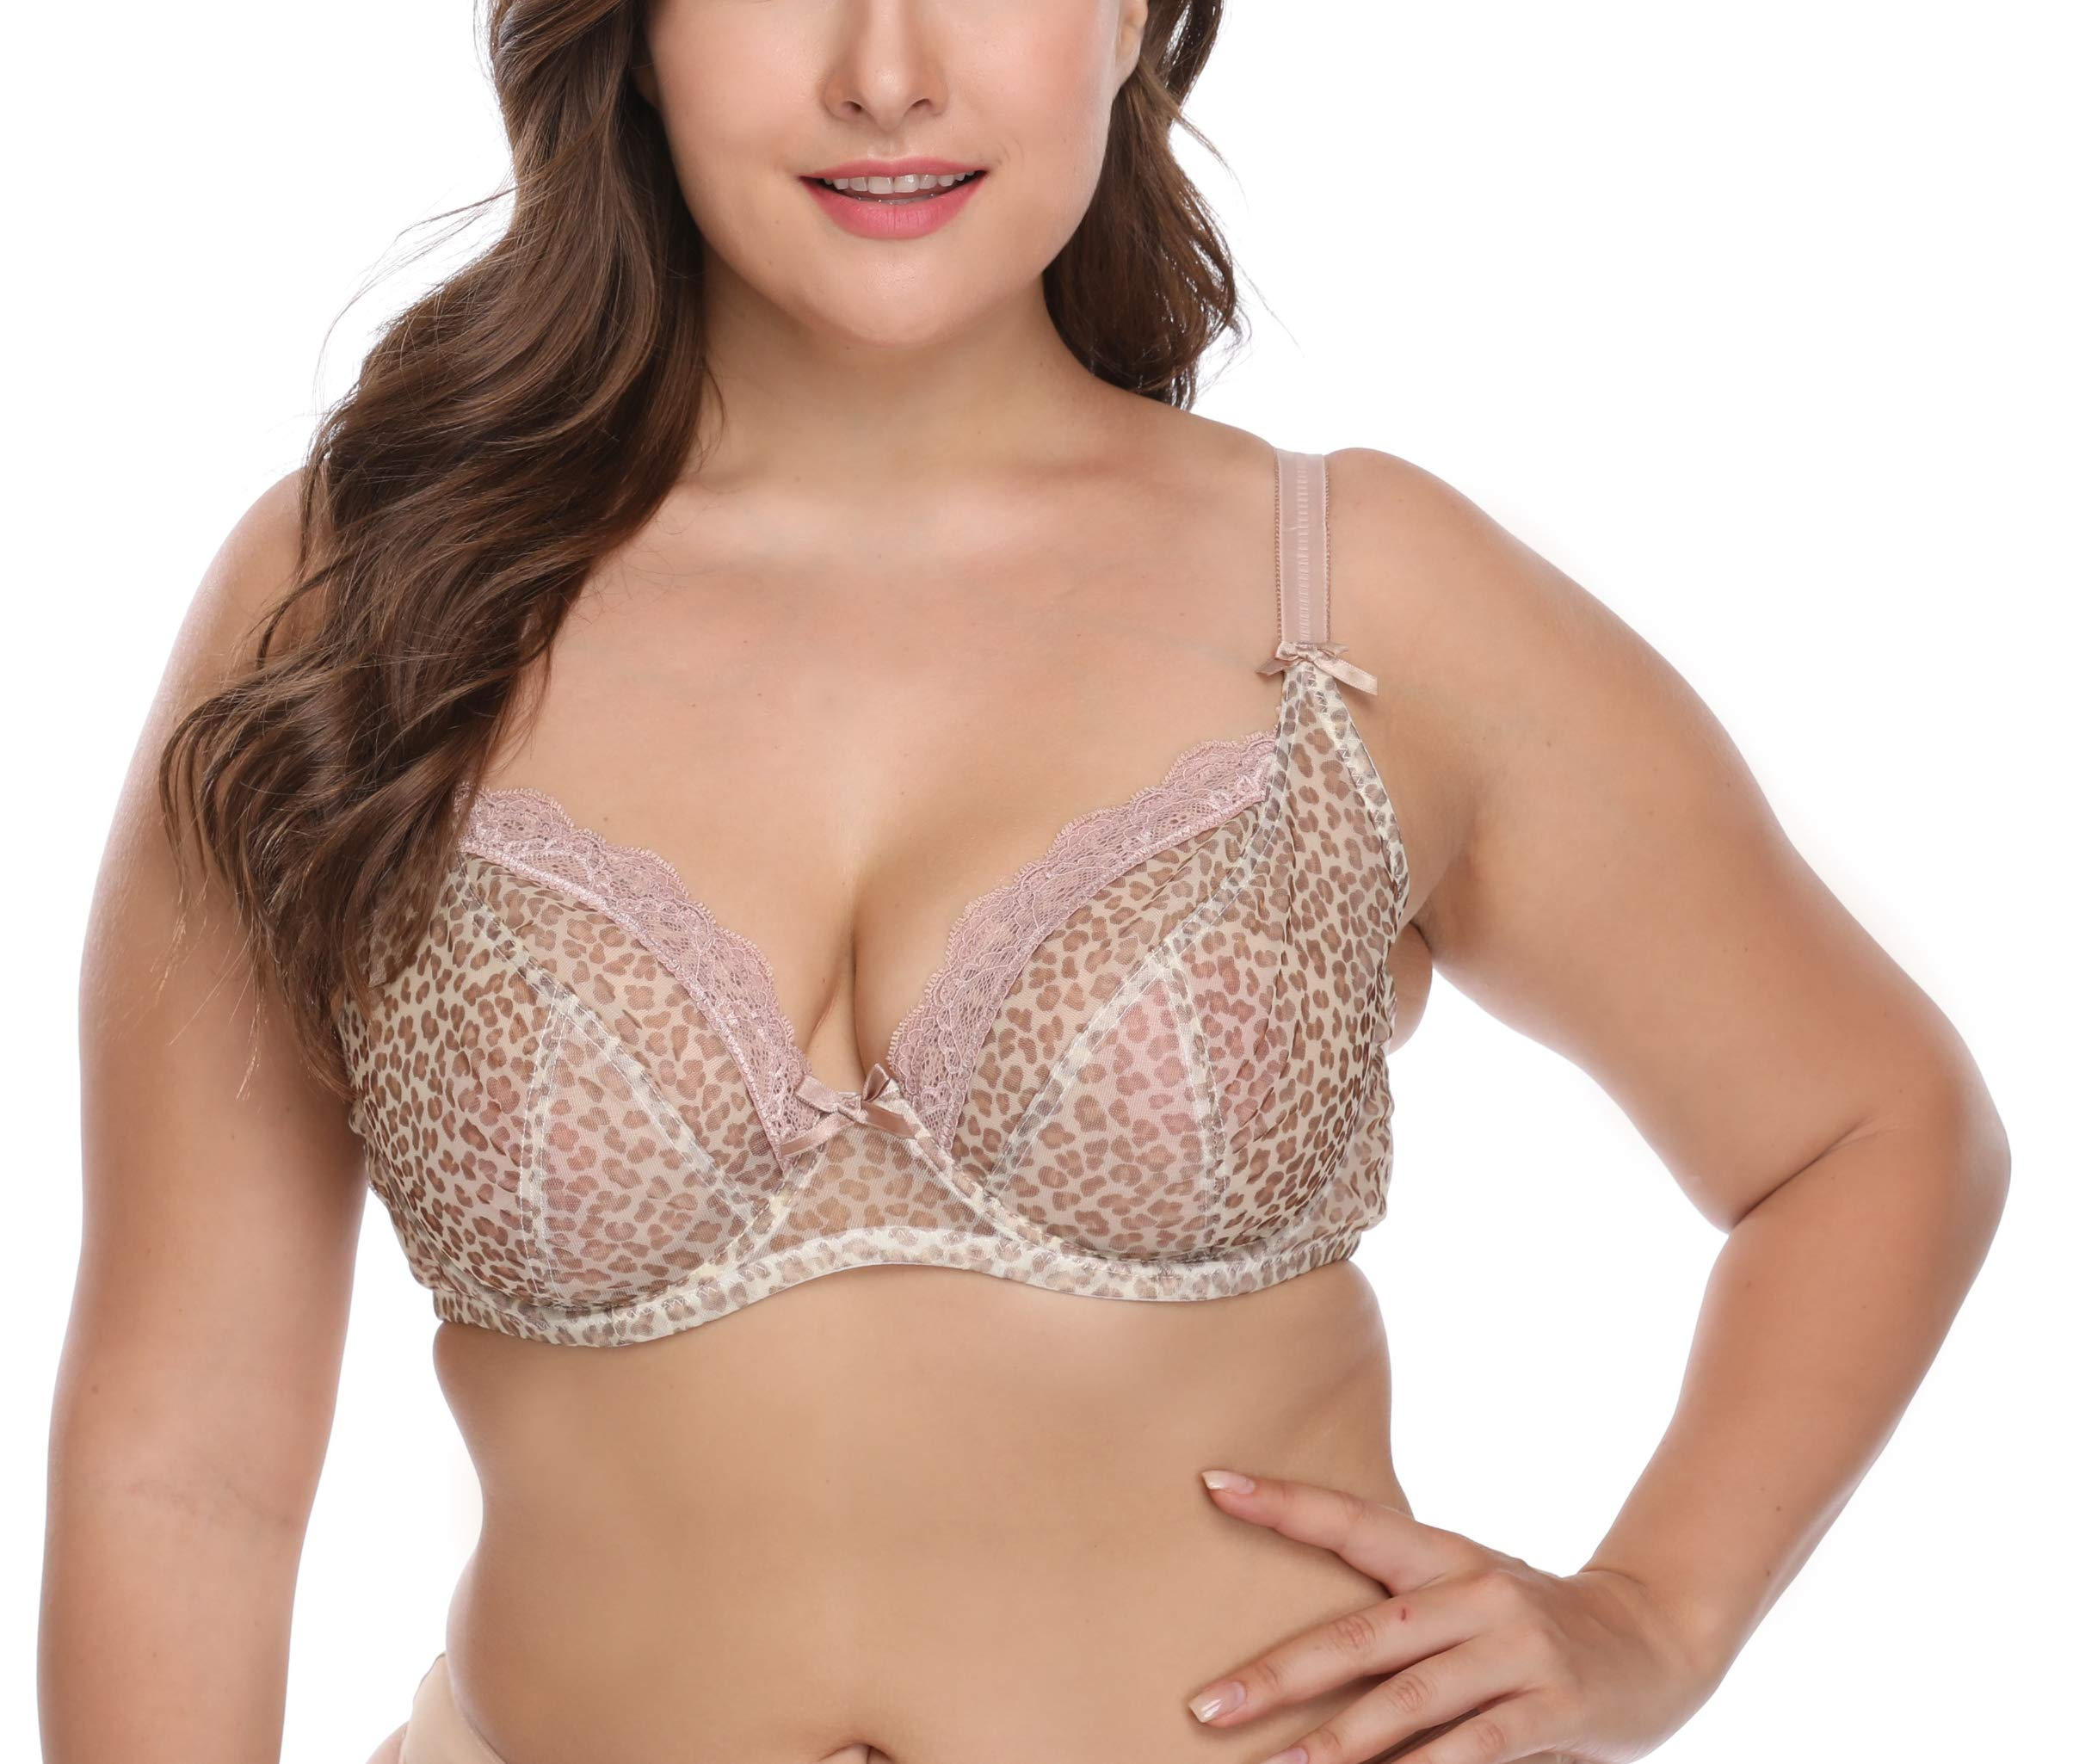 OBERORA Lace Leopard Bra for Women Plus Size Push Up Underwire Unpadded Full Cup Sexy Bras for Women